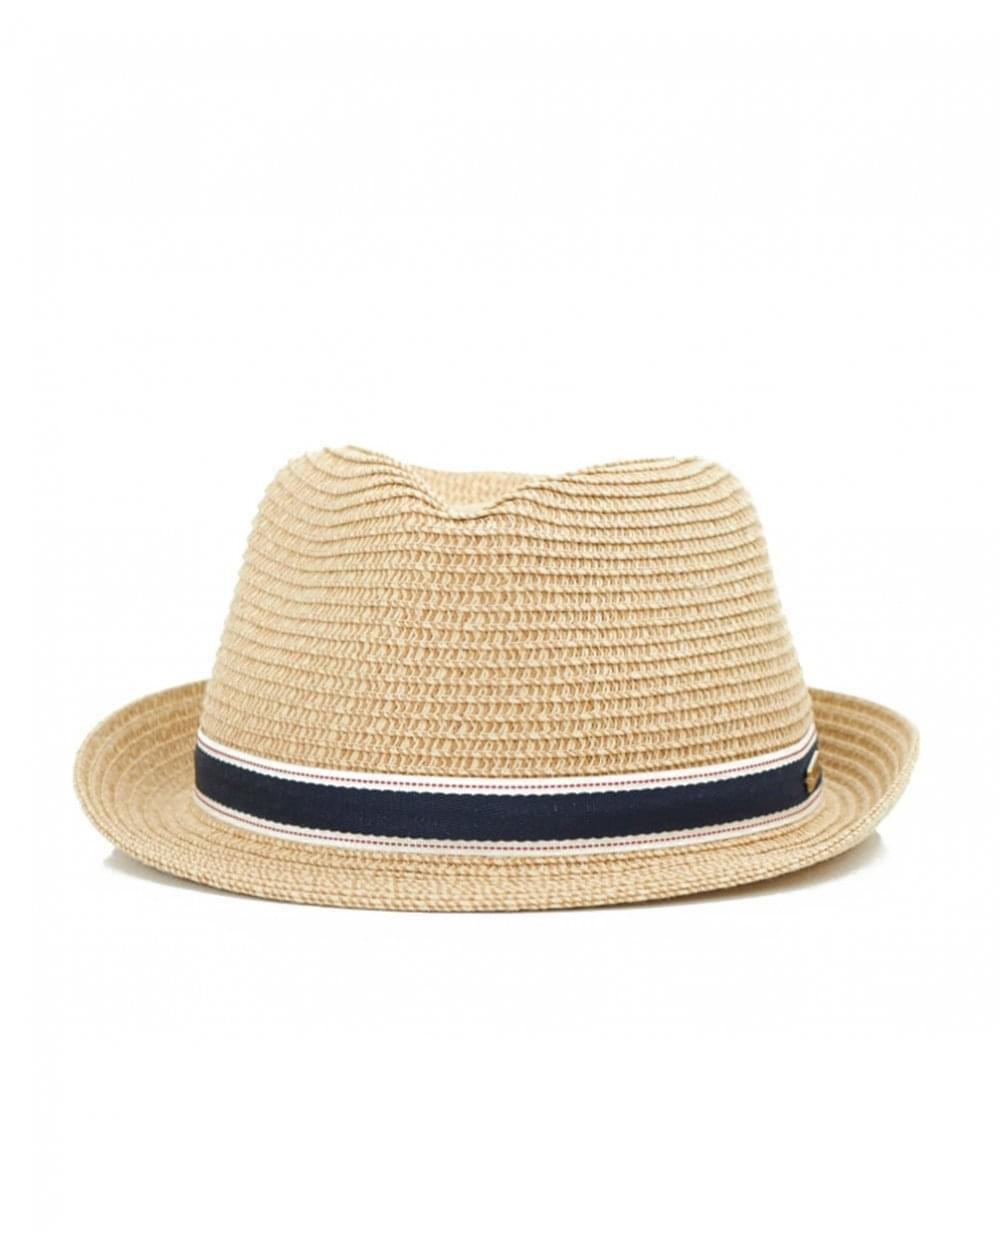 4abd7a359d149 Barbour Lagoon Trilby Hat in Natural - Lyst